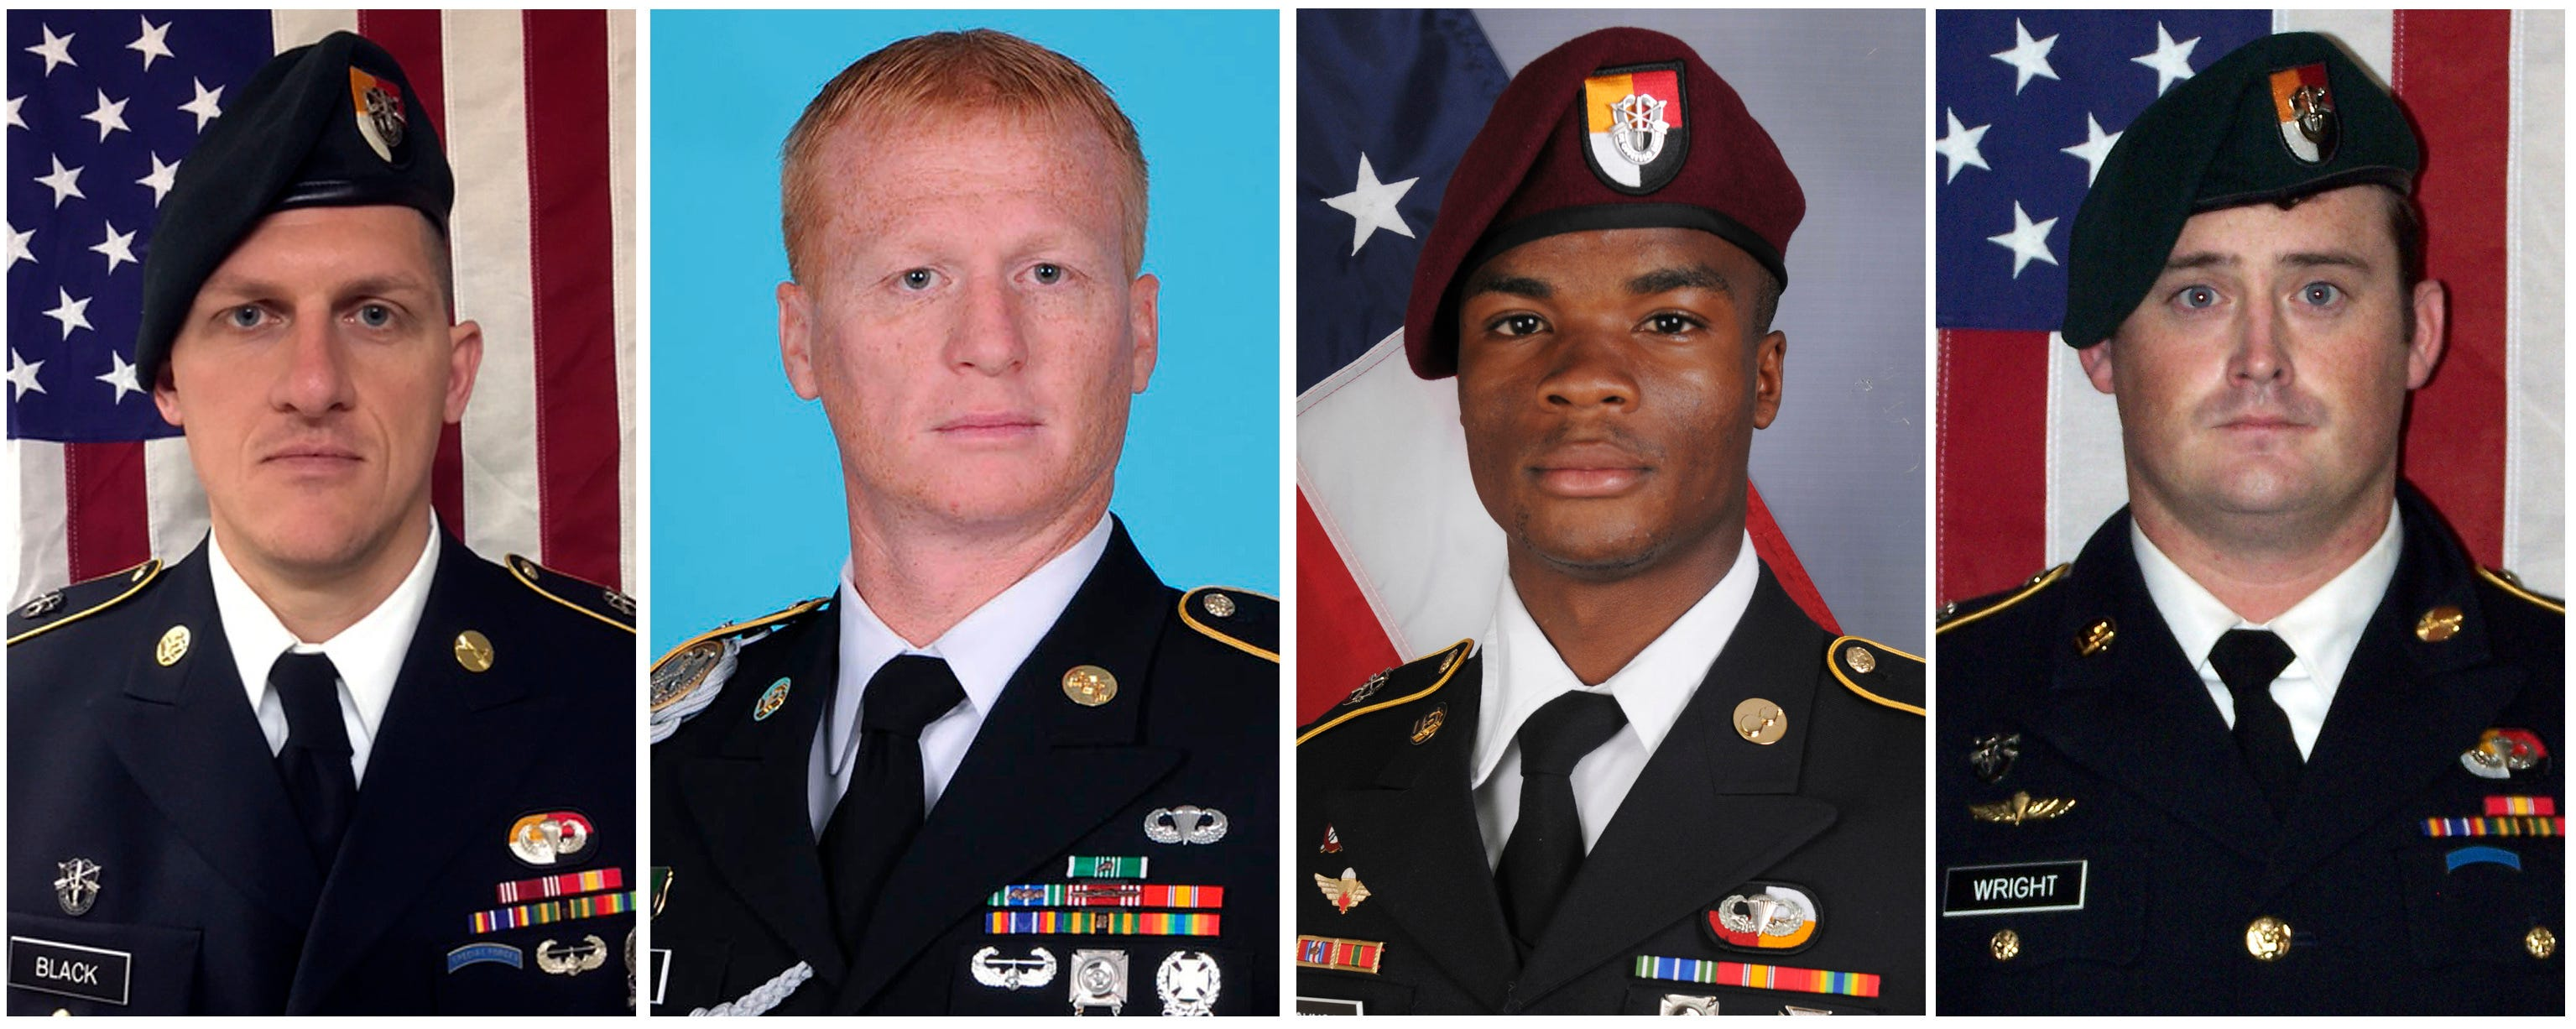 Senator says Niger mission that killed four Americans was illegal